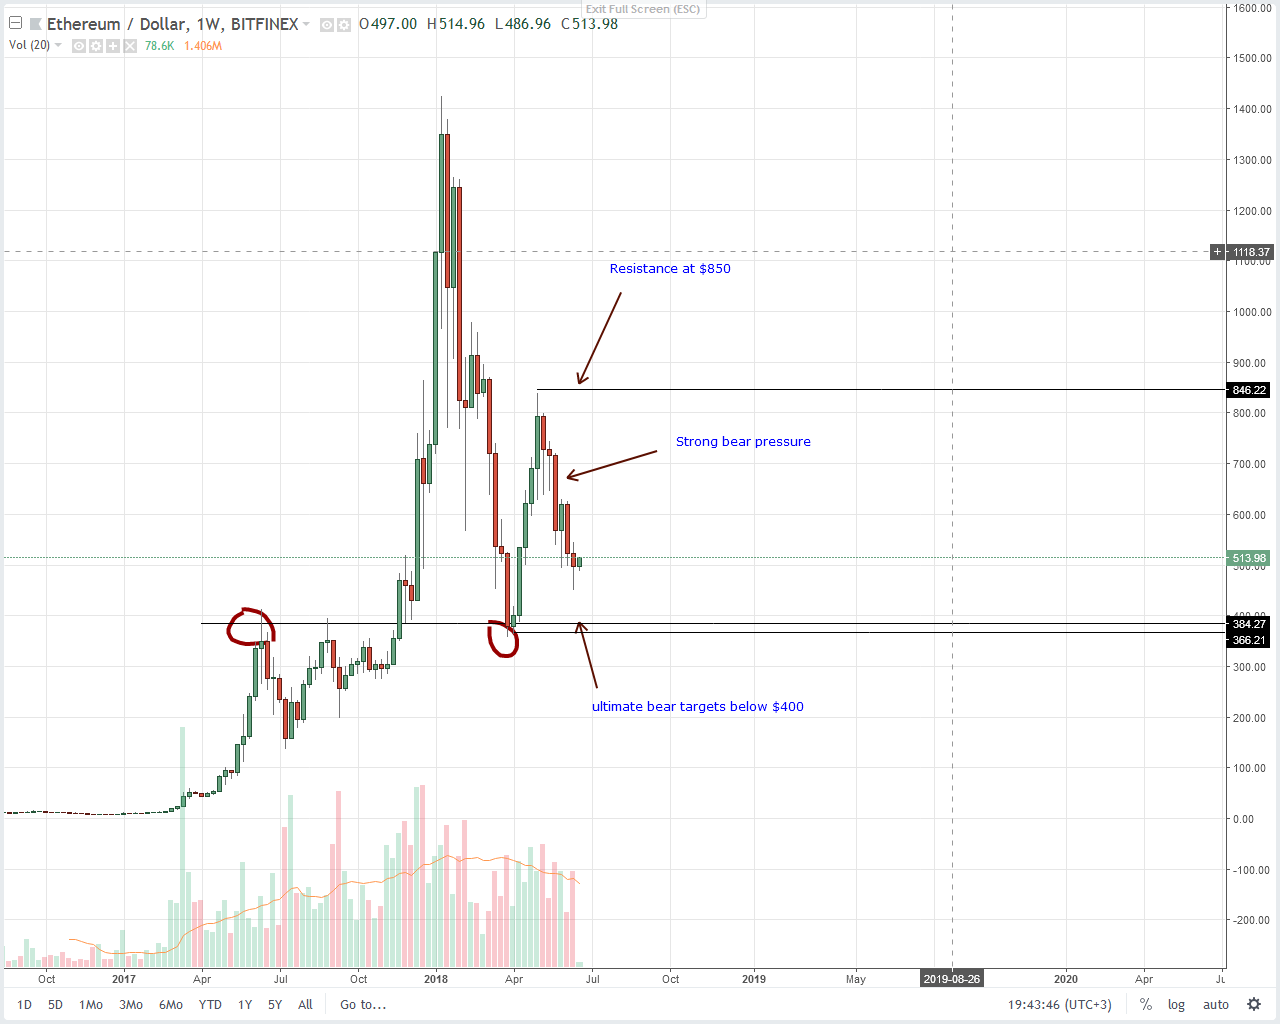 Etheruem (ETH) Technical Analysis